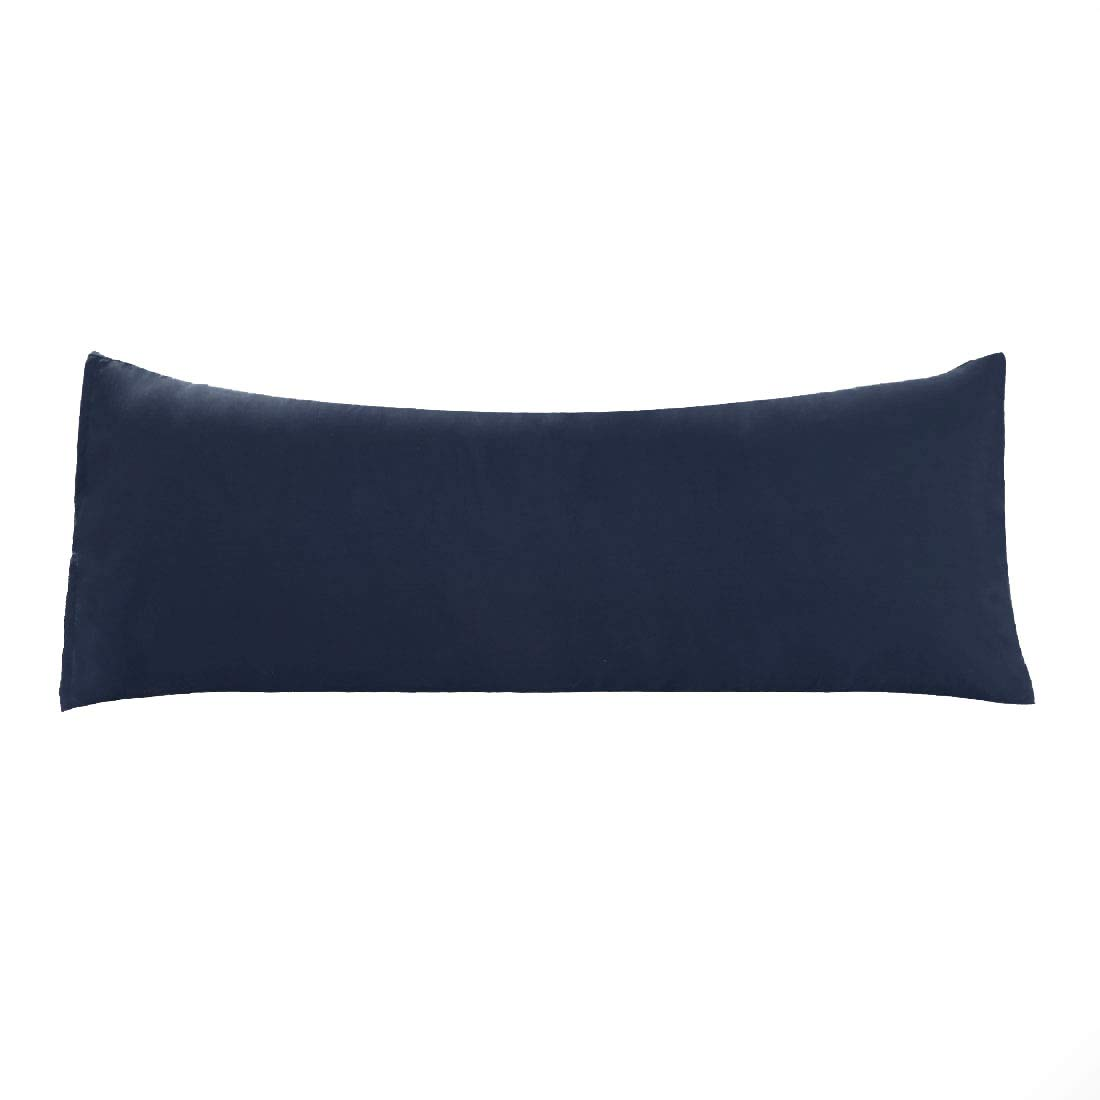 "uxcell Body Pillow Case, 1800 Soft Microfiber Pillowcases, Full Replacement Covers for Body Pillows Navy 20""x72"""